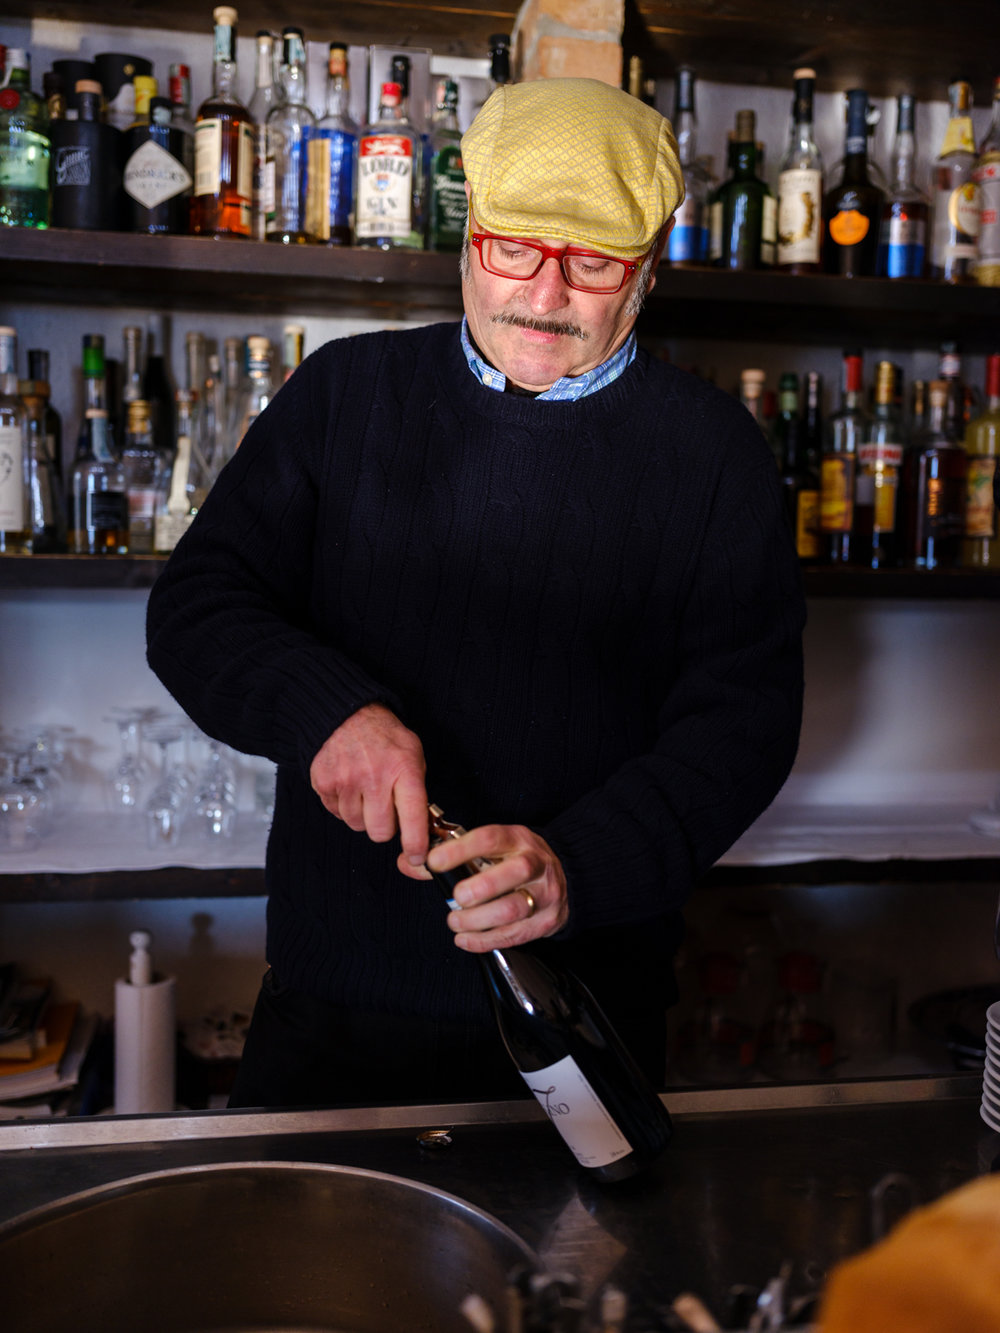 Gino, owner of ristorante Belbo Da Bardon, opening a bottle wine in his restaurant